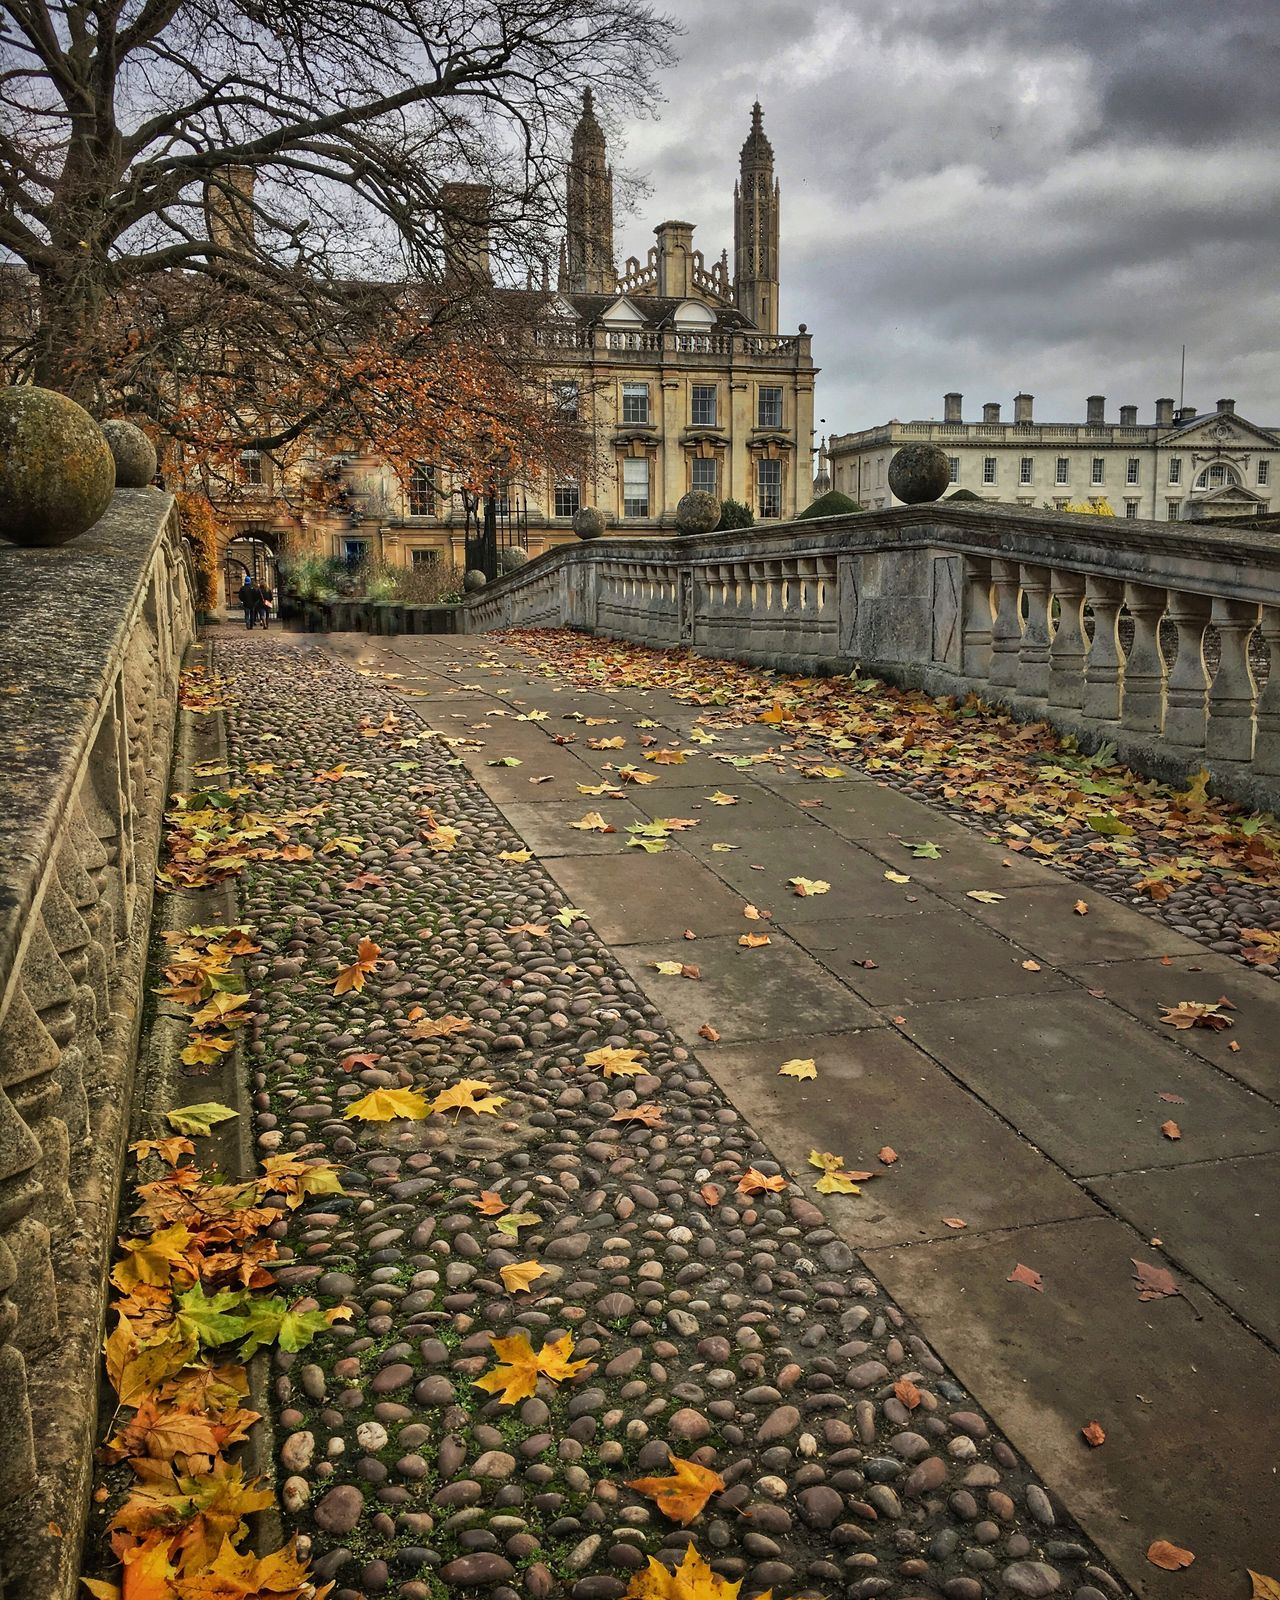 Built Structure Architecture Building Exterior Autumn Change Travel Destinations Cambridge University Cambridge Cambridgeshire Architecture_collection Bridge Leaves Outdoors No People The Way Forward City Bare Tree Day Nature